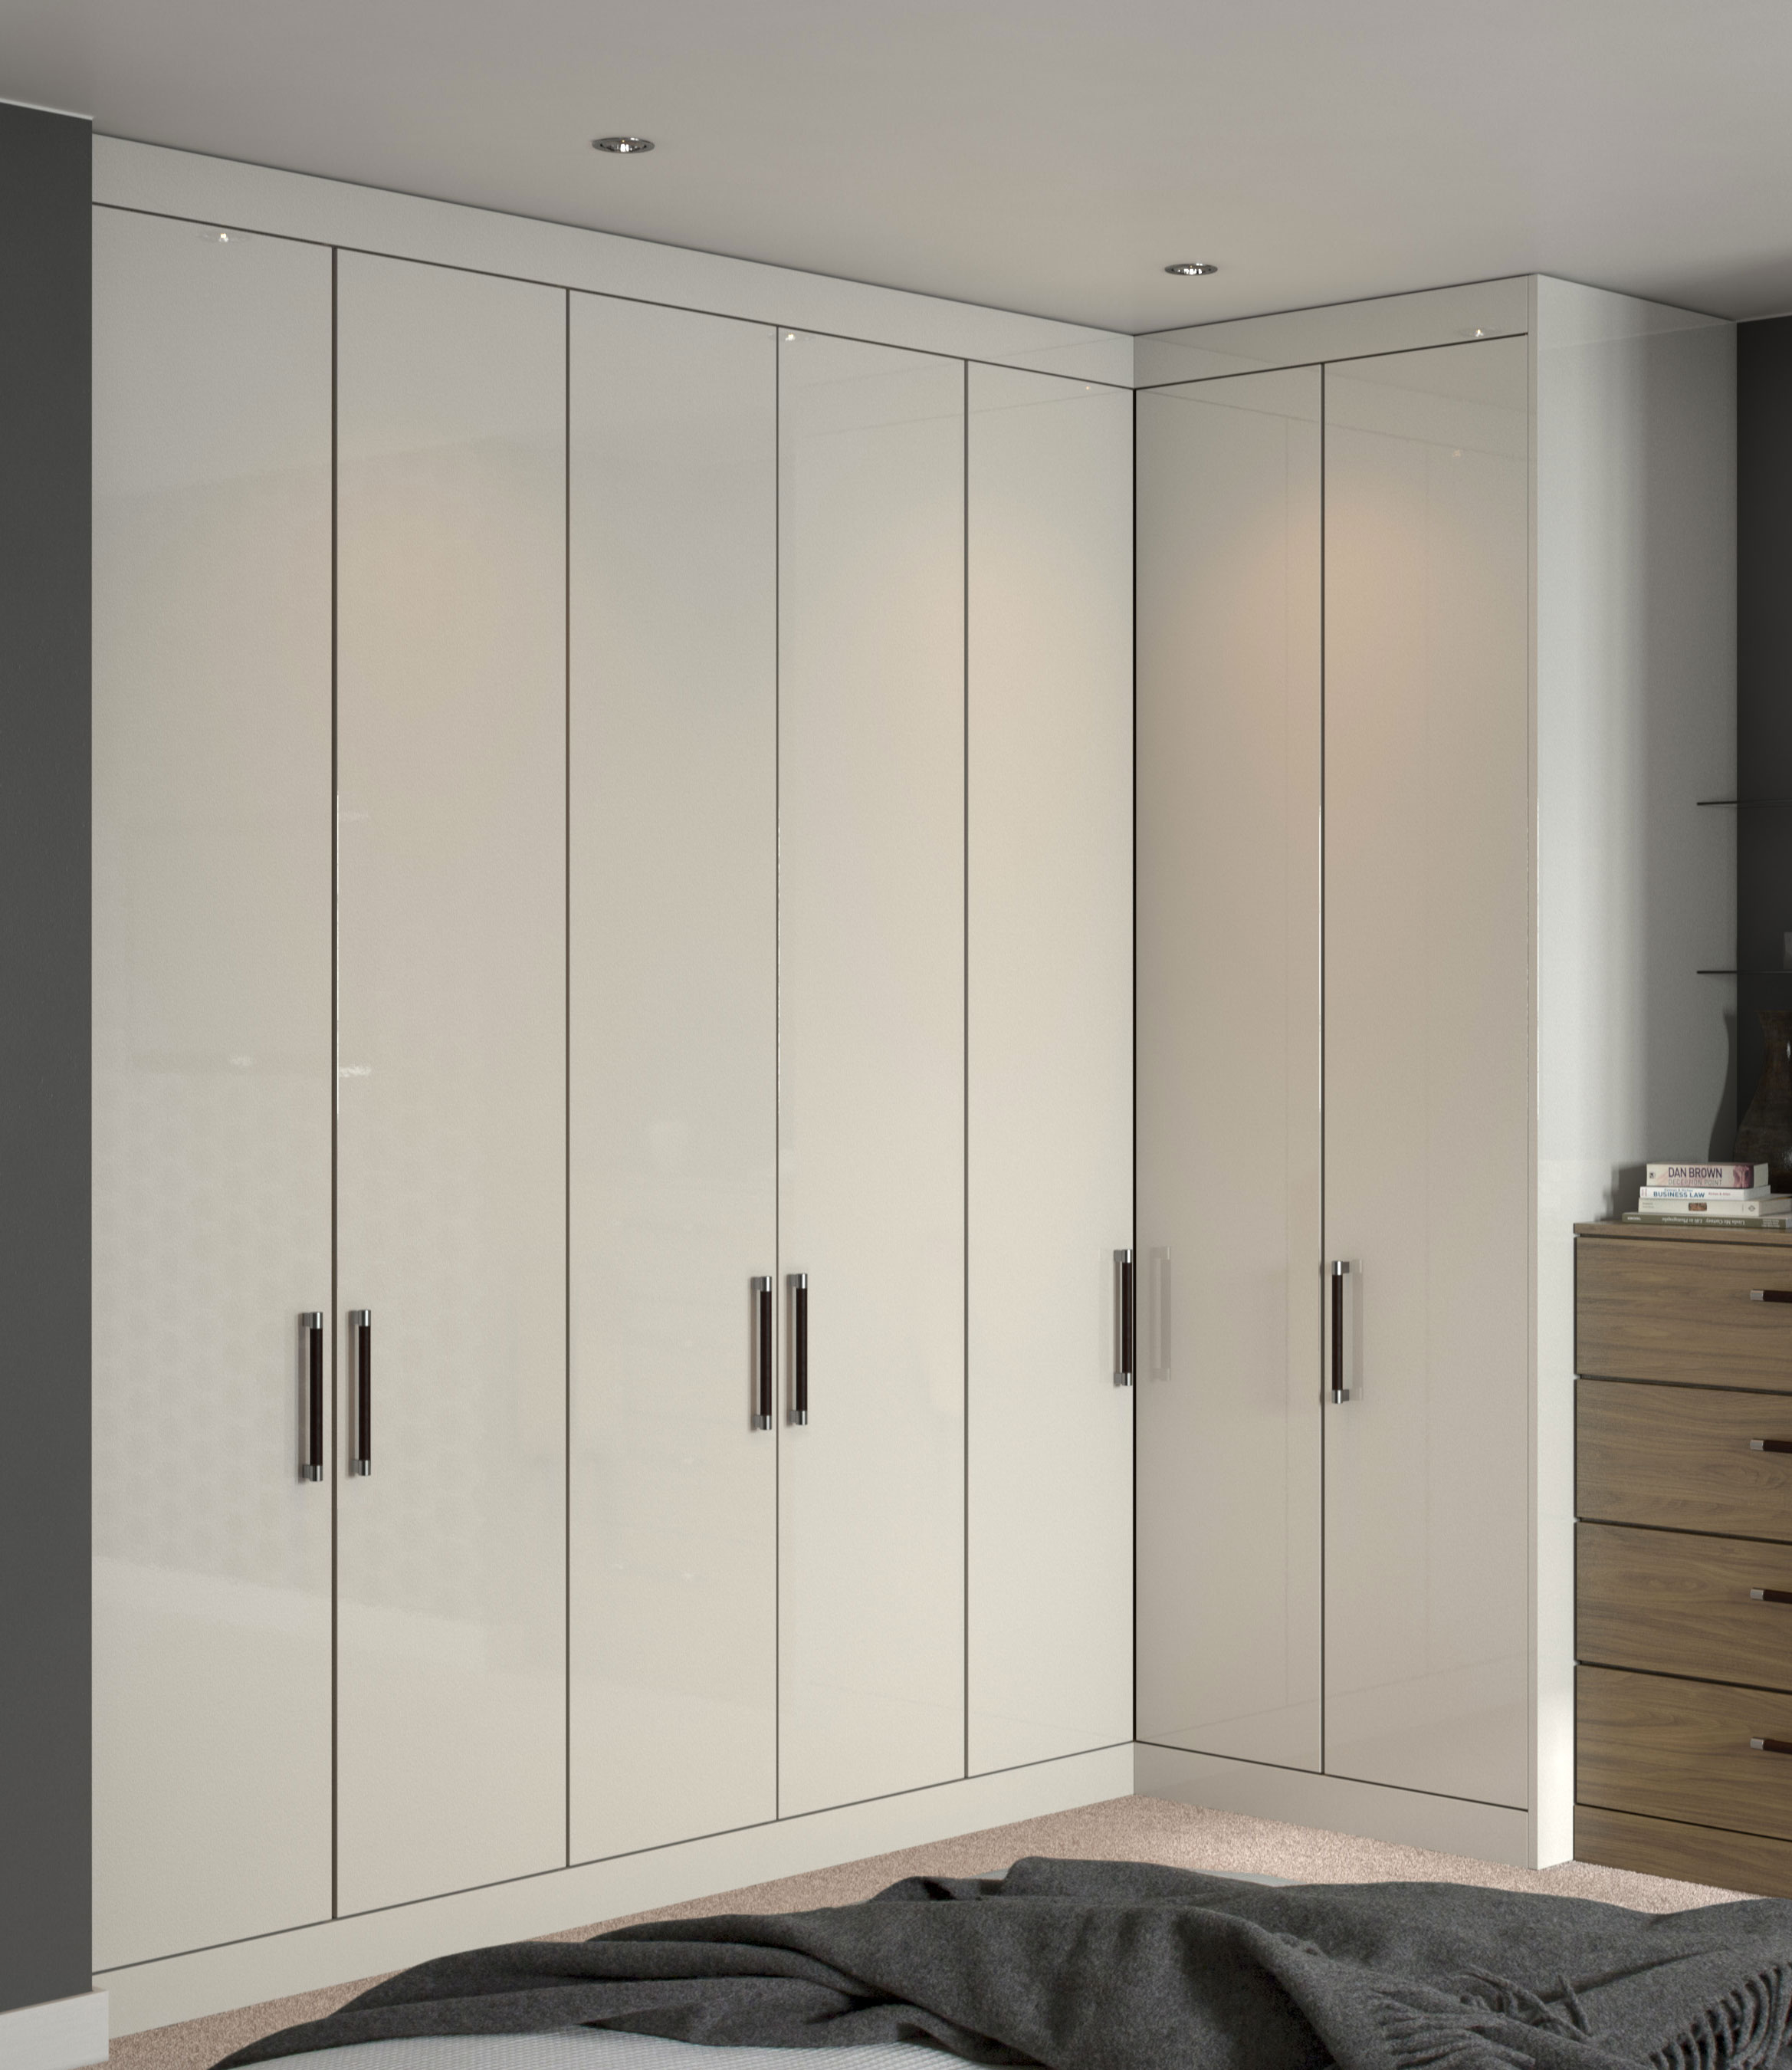 Garda fitted wardrobes Leeds 2